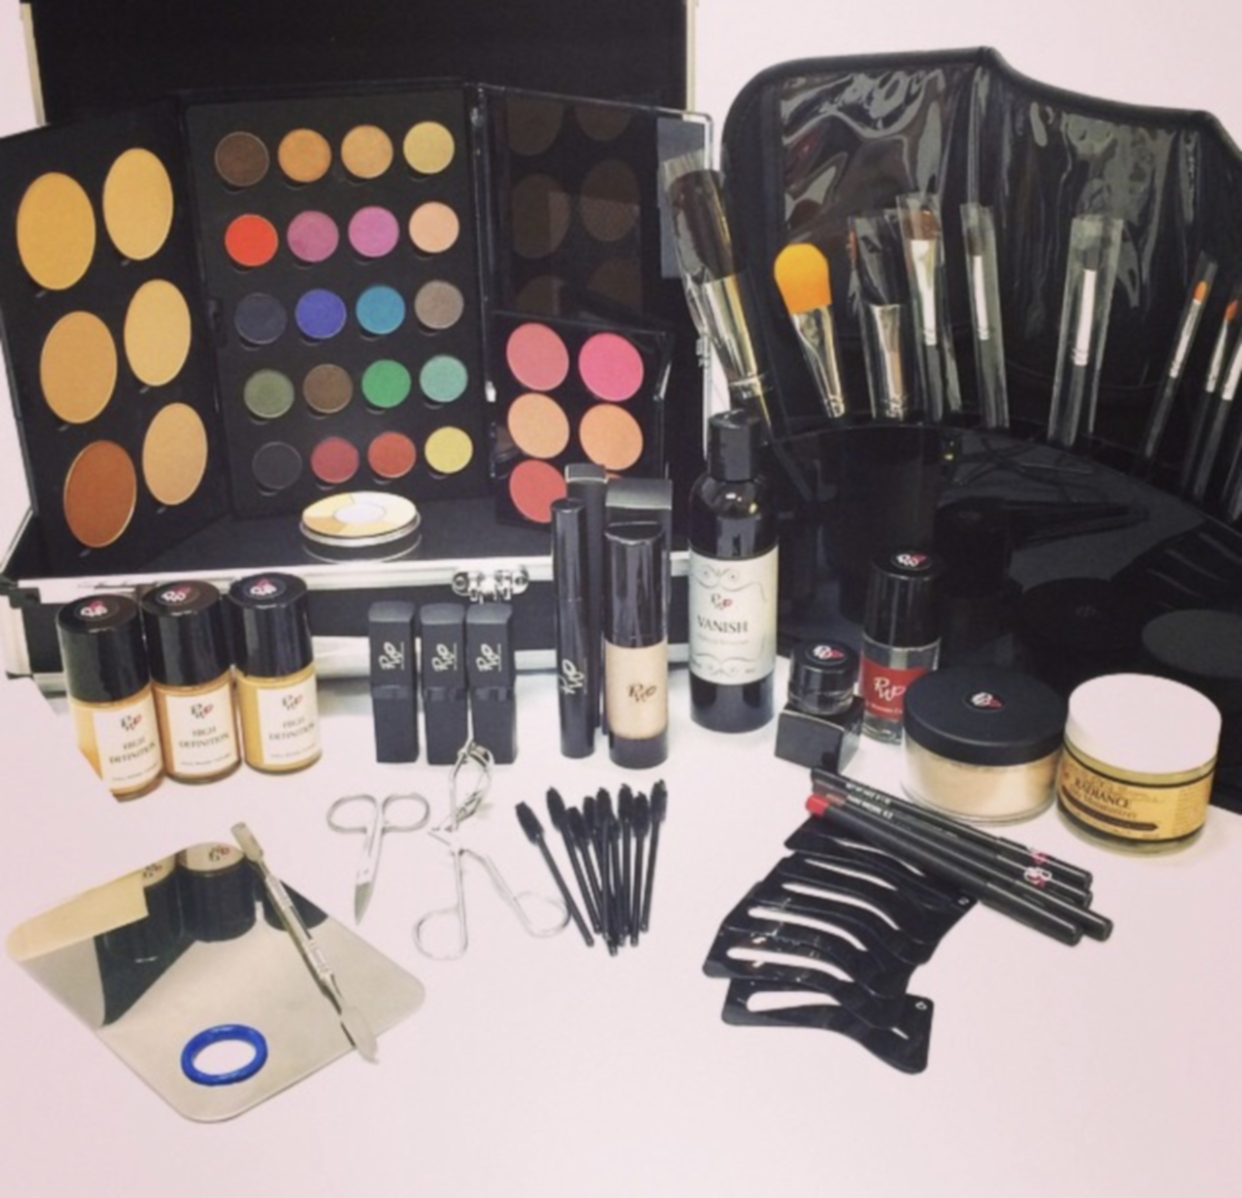 Professional Makeup Kit from Pretty Woman Cosmetics. We ensure that our students are equipped with the Pro Artist Makeup Kit to get them started in the industry.